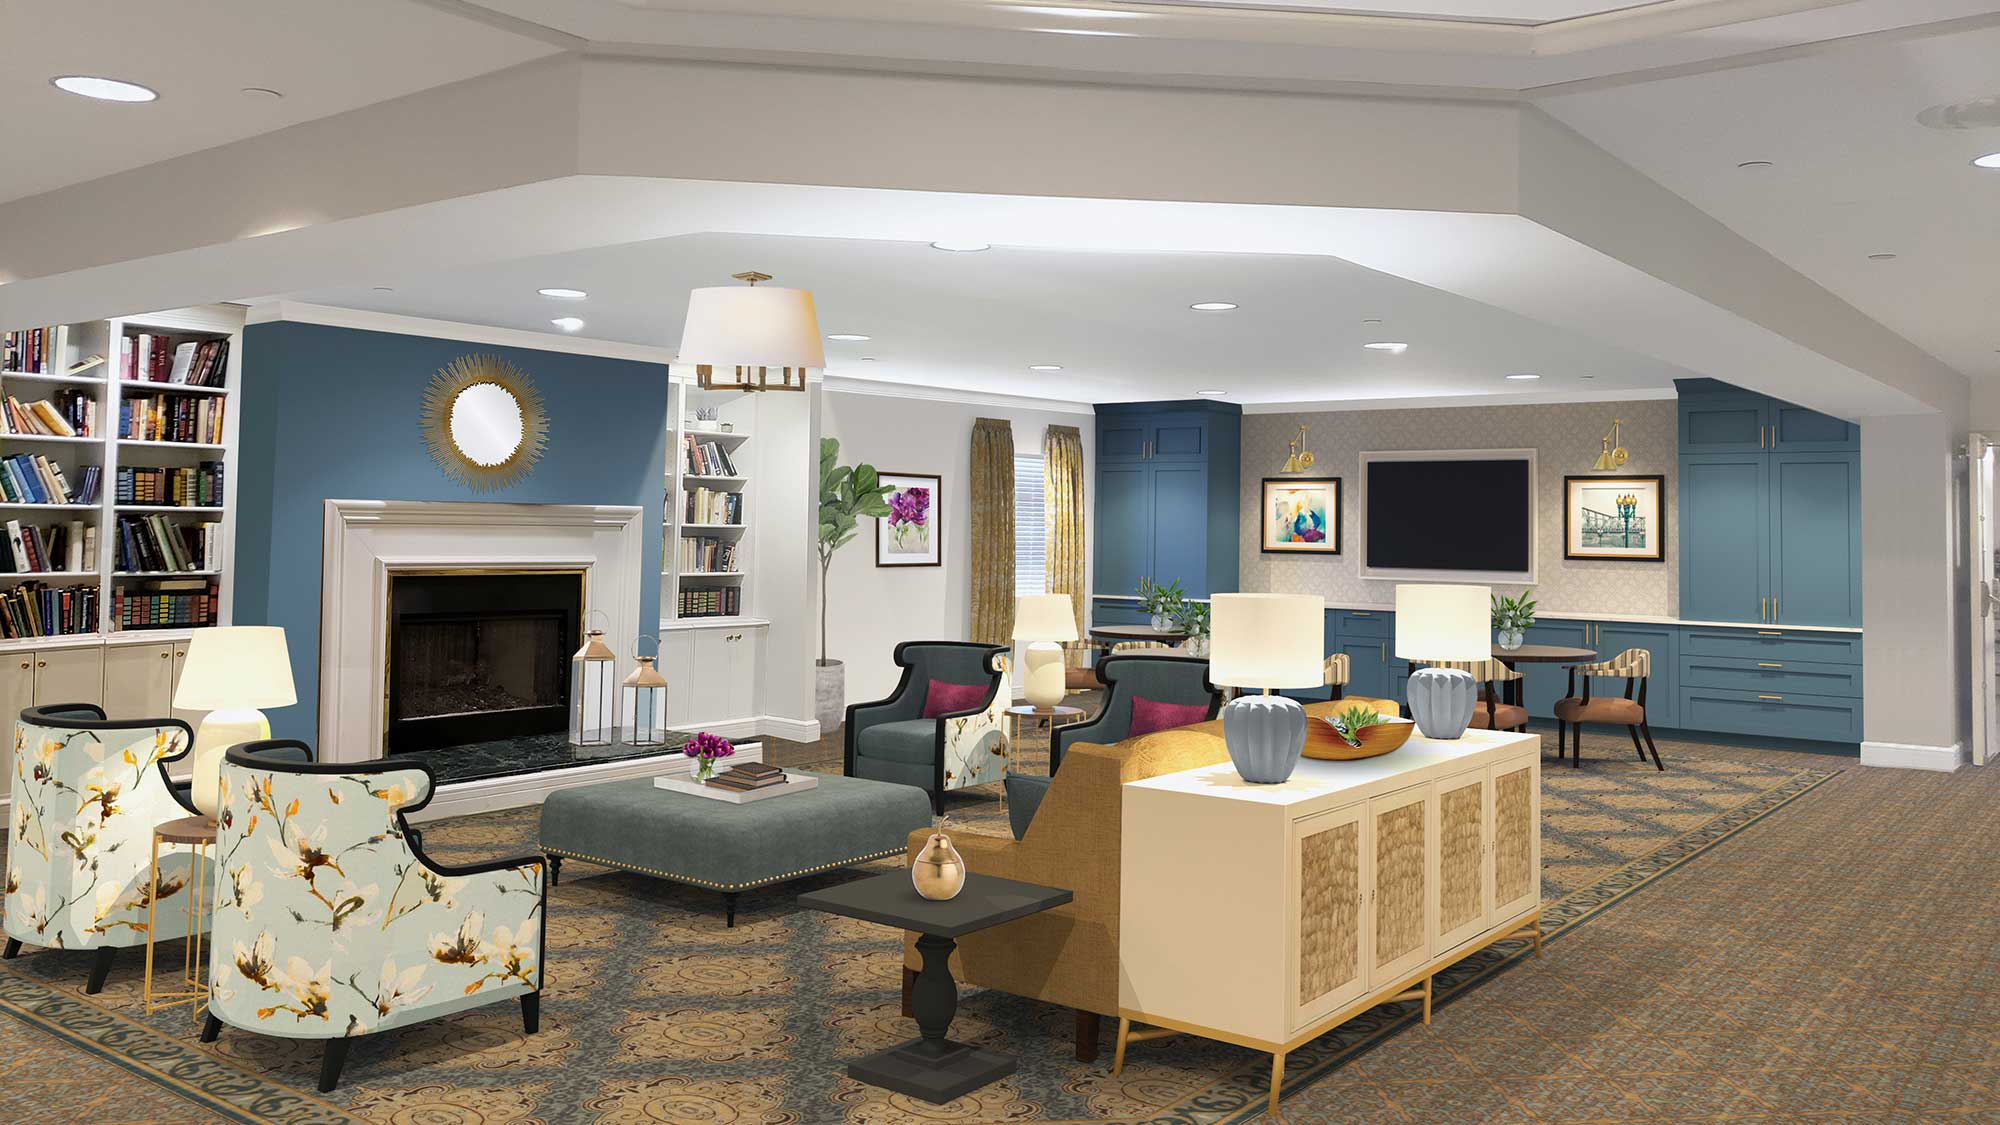 Rendering of living room-style common area